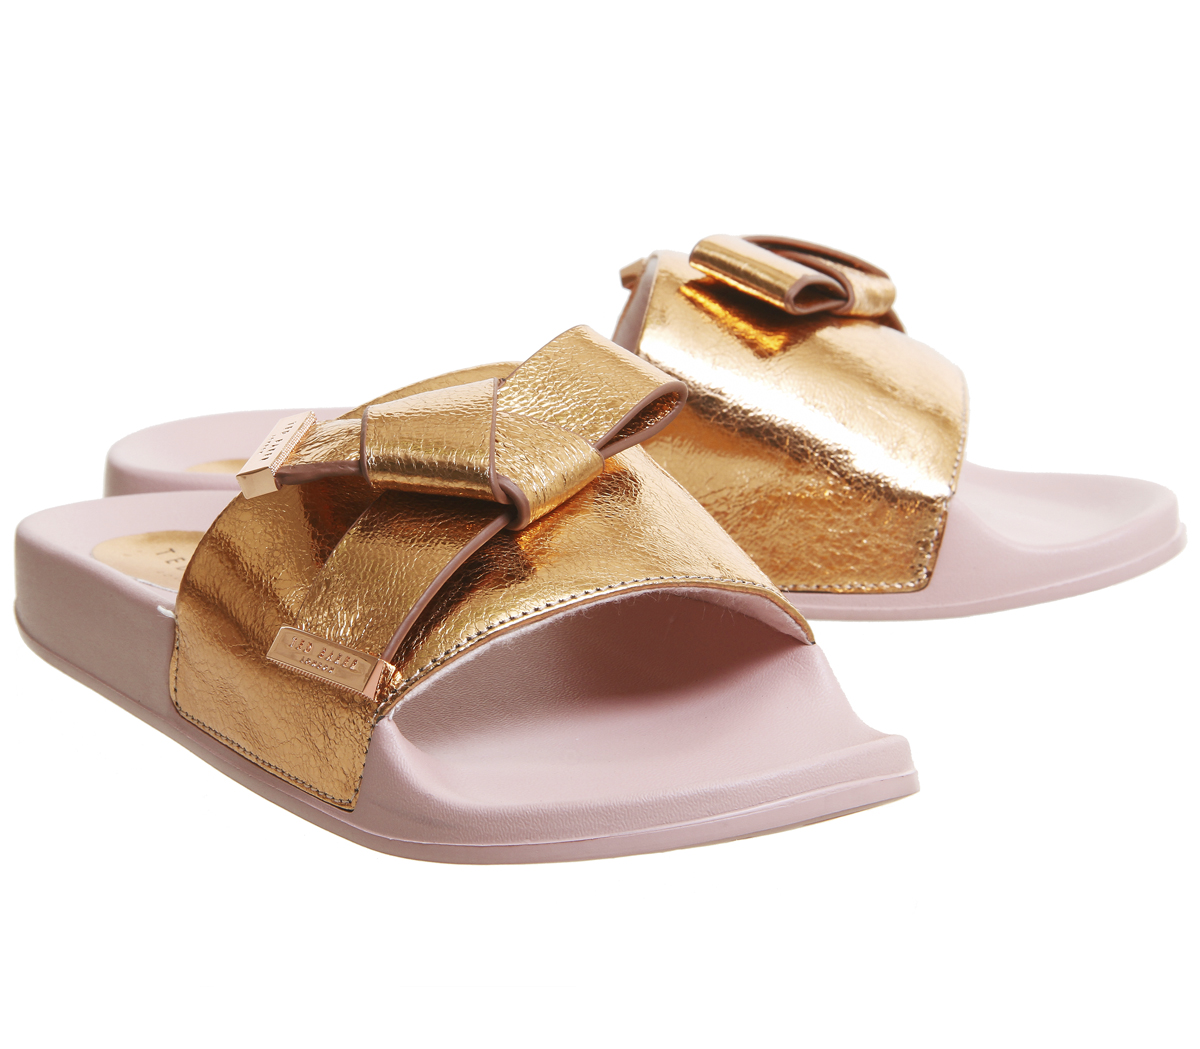 3a67a6912 Womens Ted Baker Melvah Bow Slides ROSE GOLD LEATHER Sandals